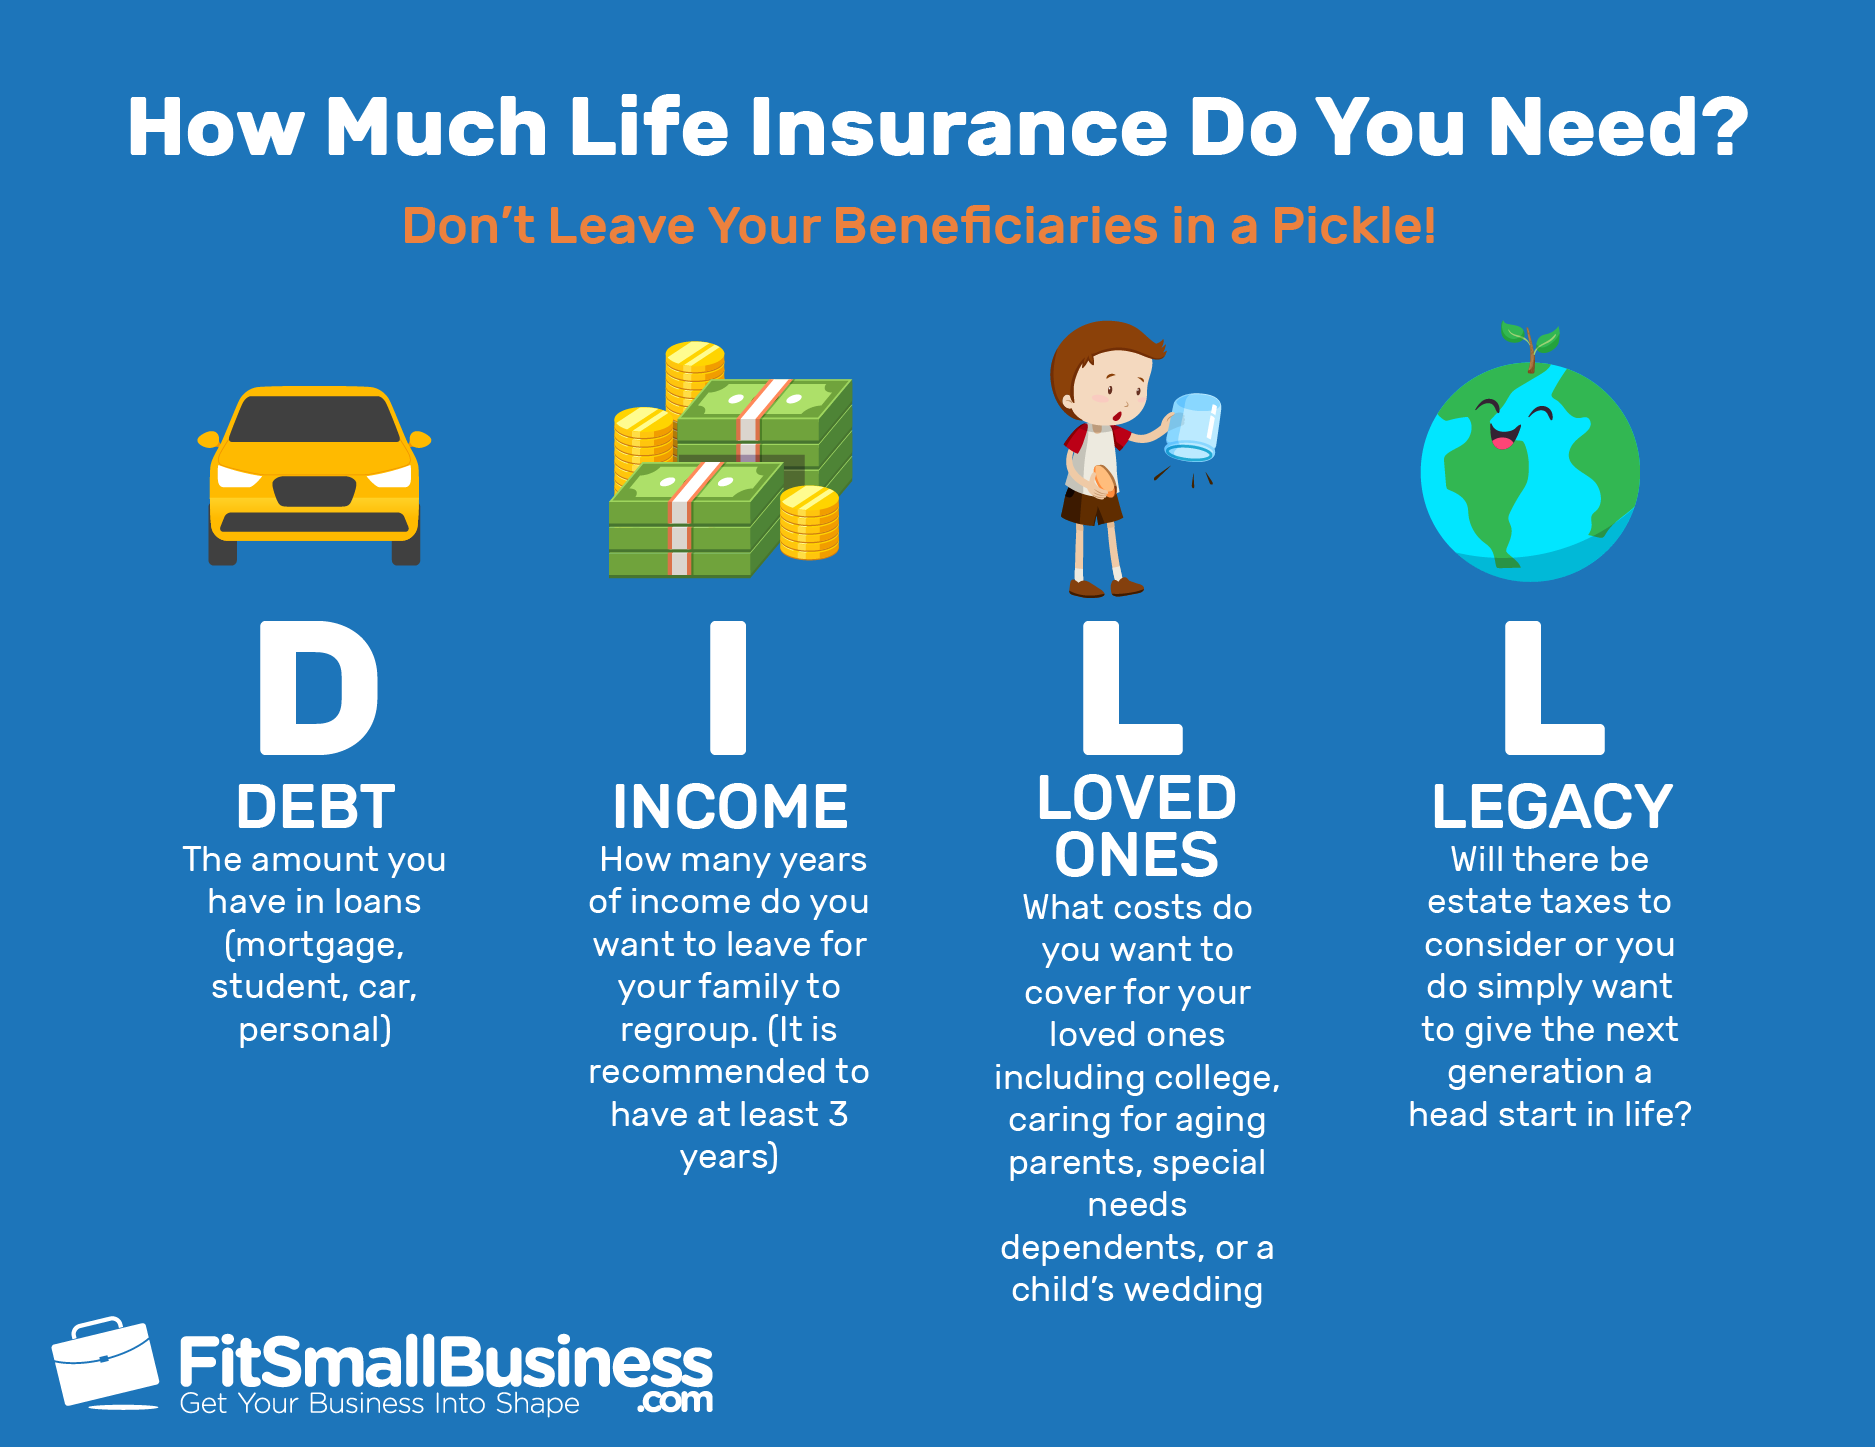 whole life insurance info-graphics